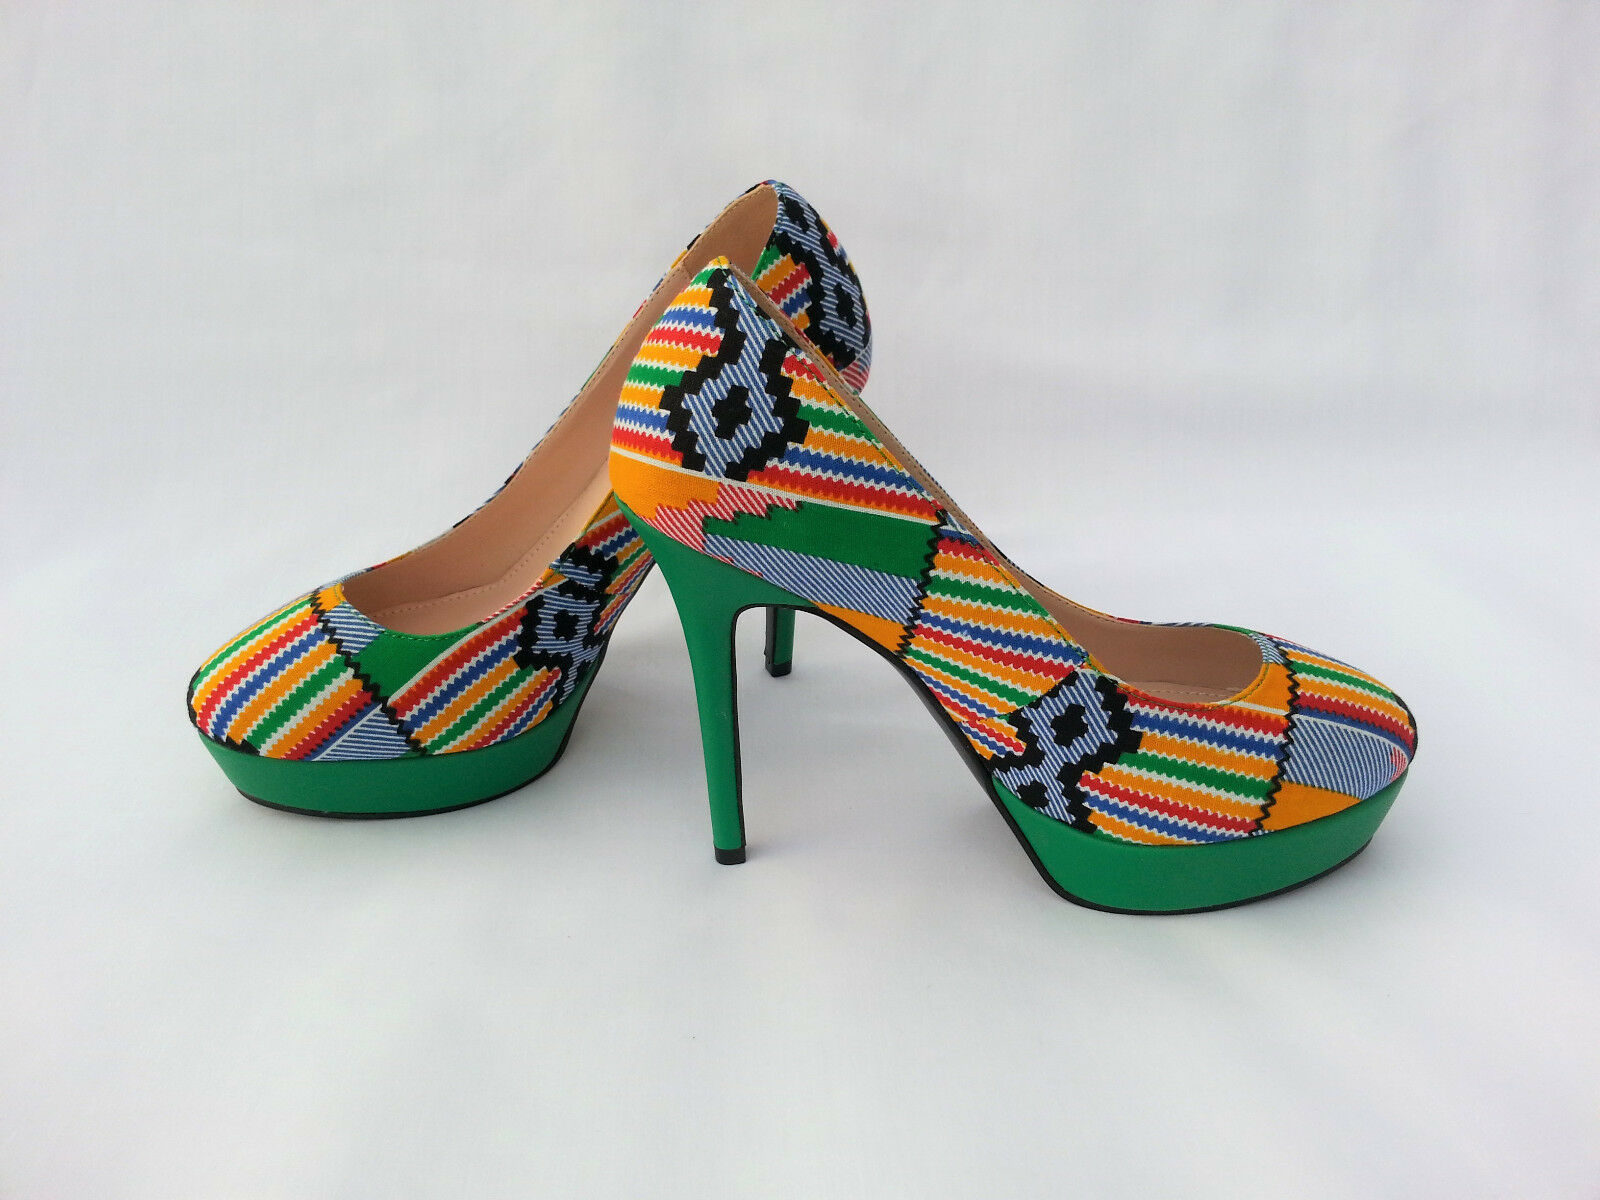 Chaussures femmes africaines Imprimer kente Taille UK 4,5,6,7,8,9